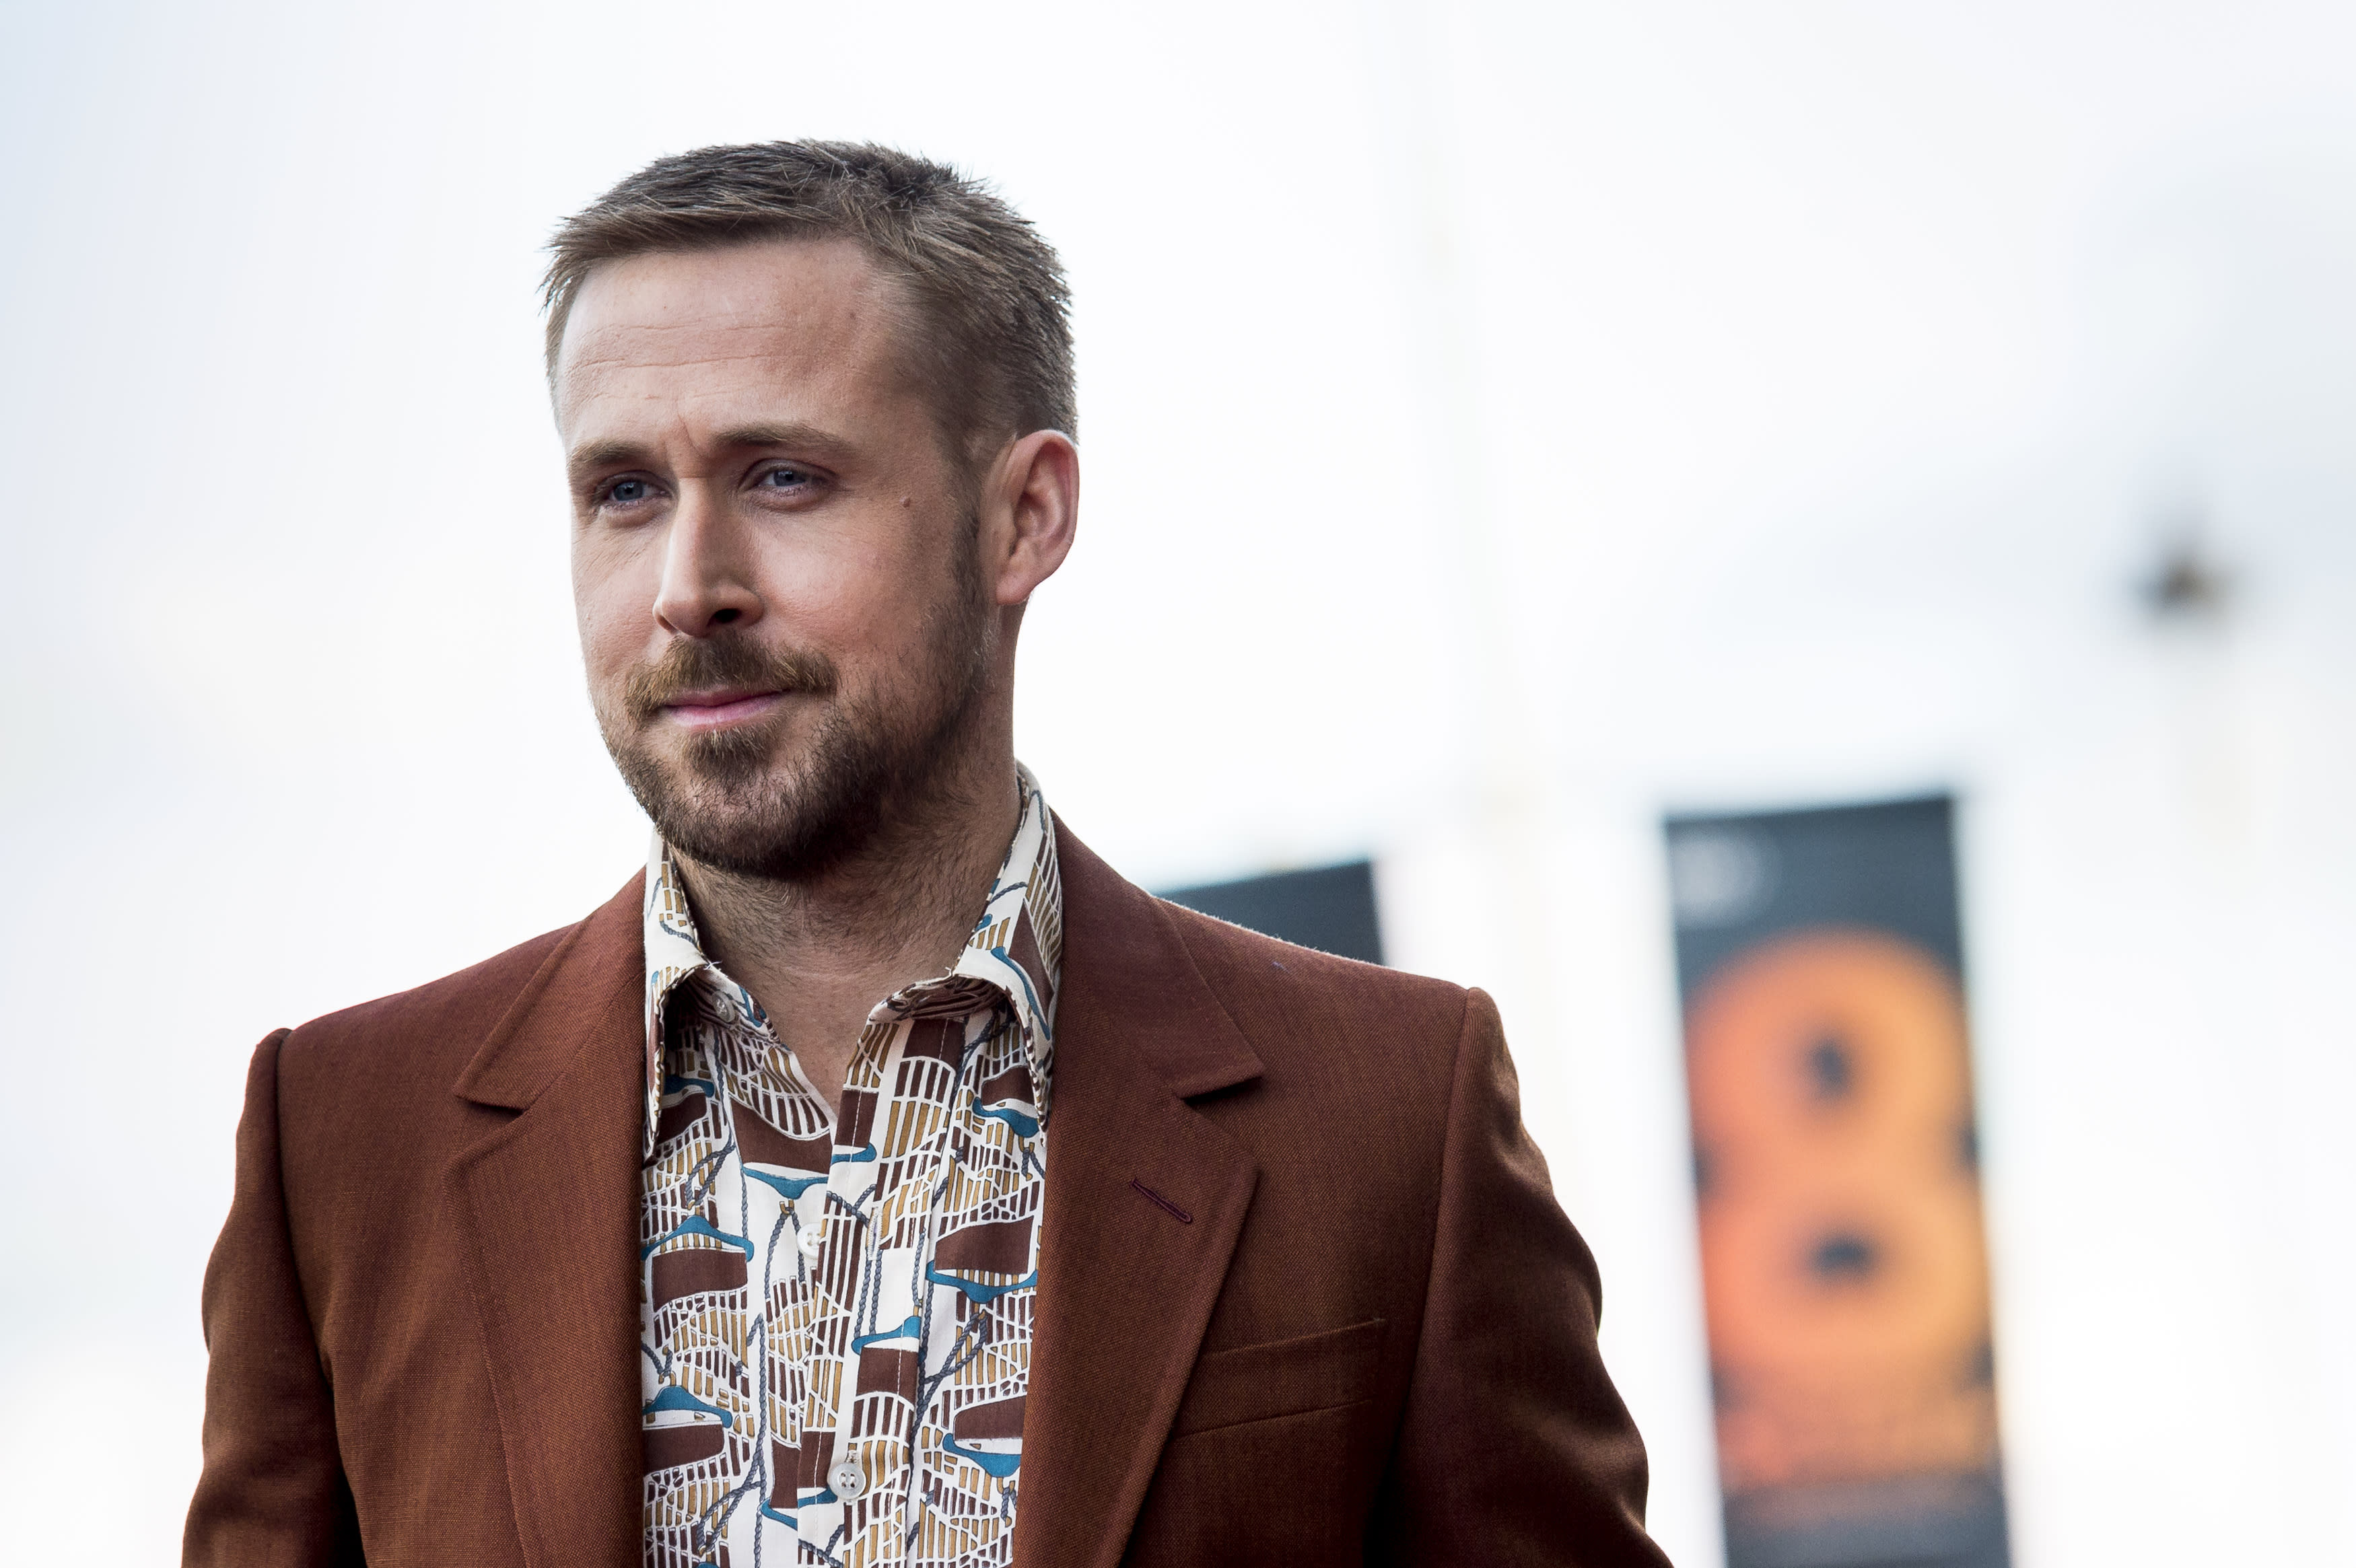 Ryan Gosling will be 'The Wolfman' in new Universal monster movie